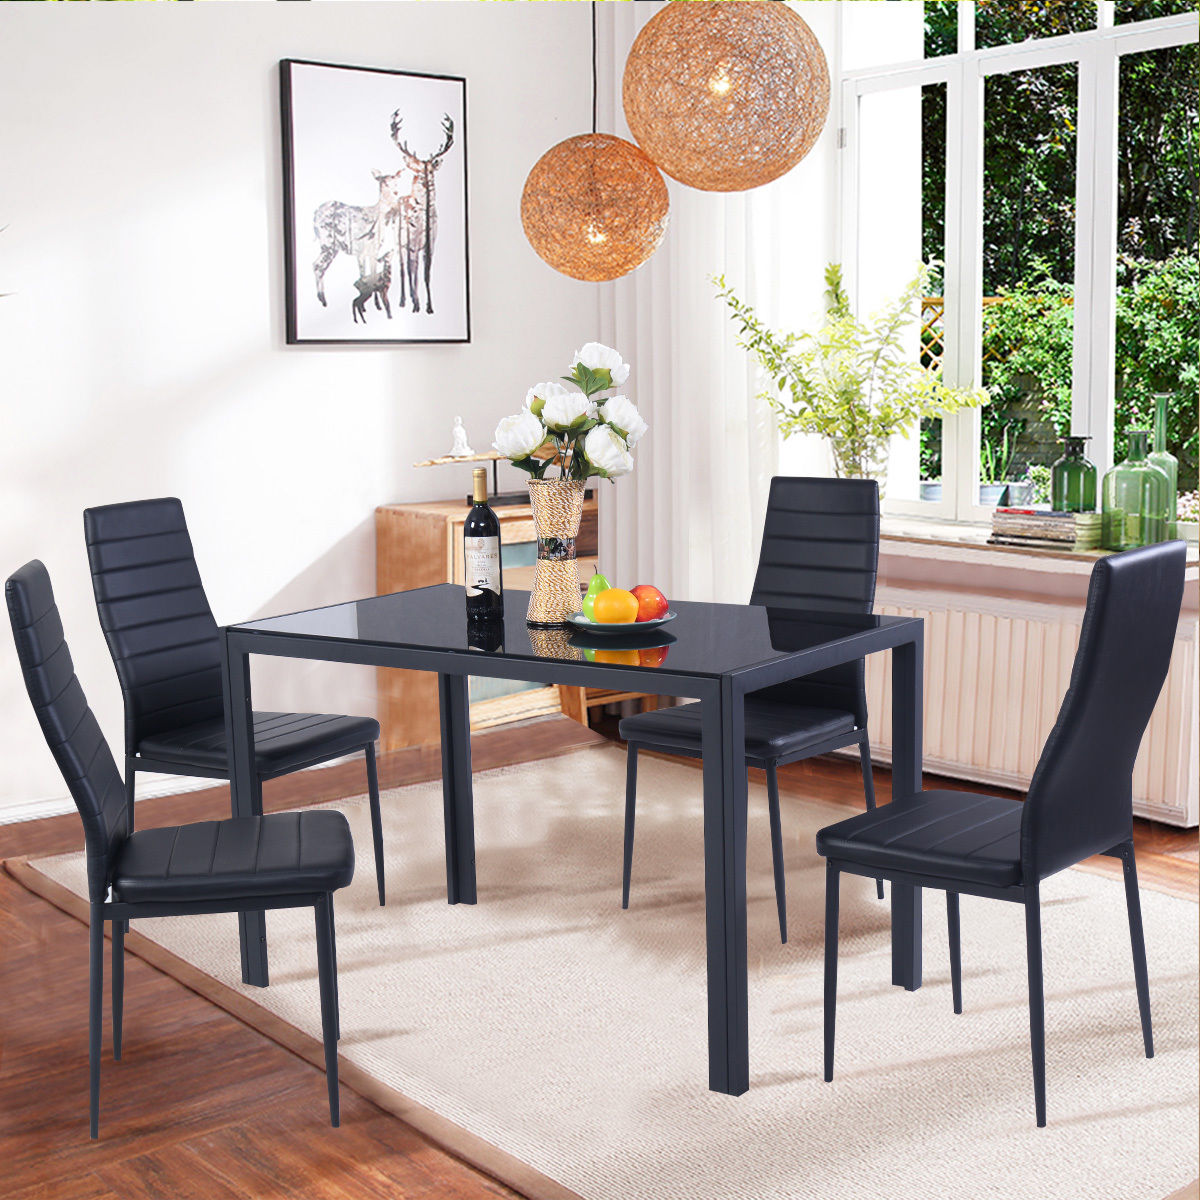 DINING TABLE 5